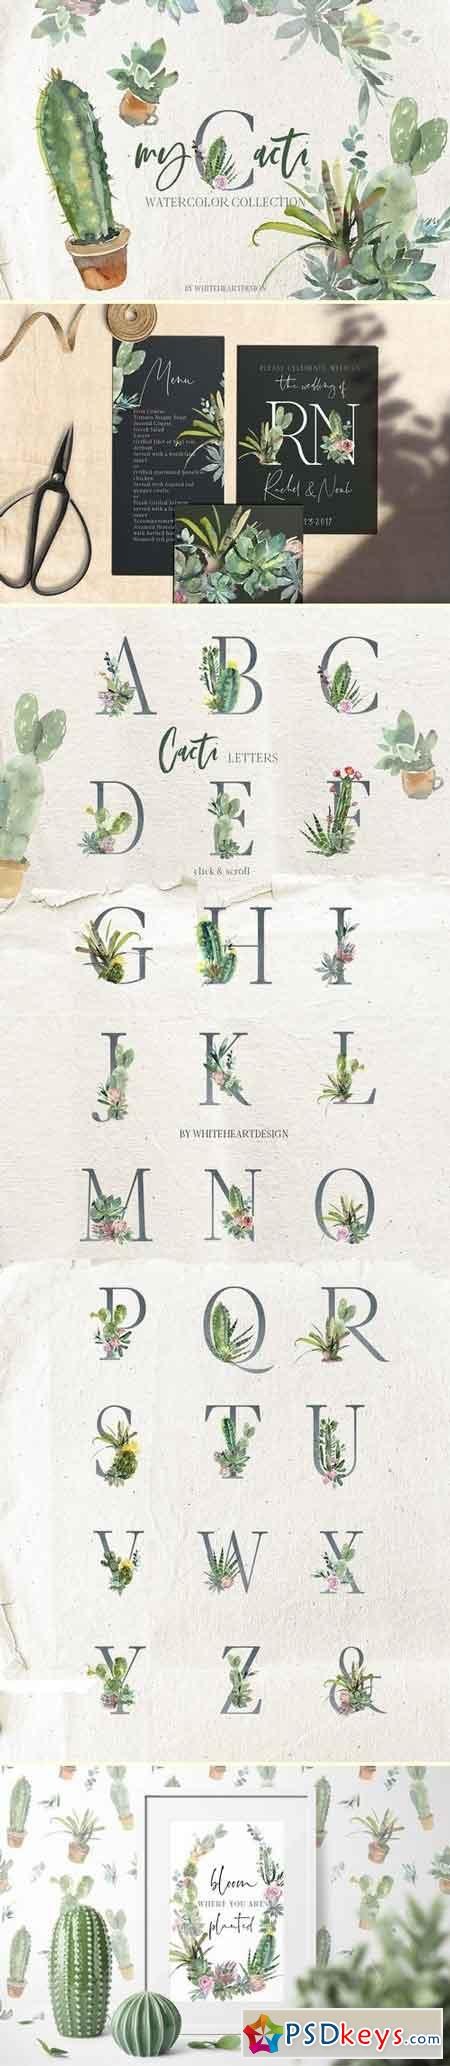 Cacti Watercolor Cactuses Clipart 2917005